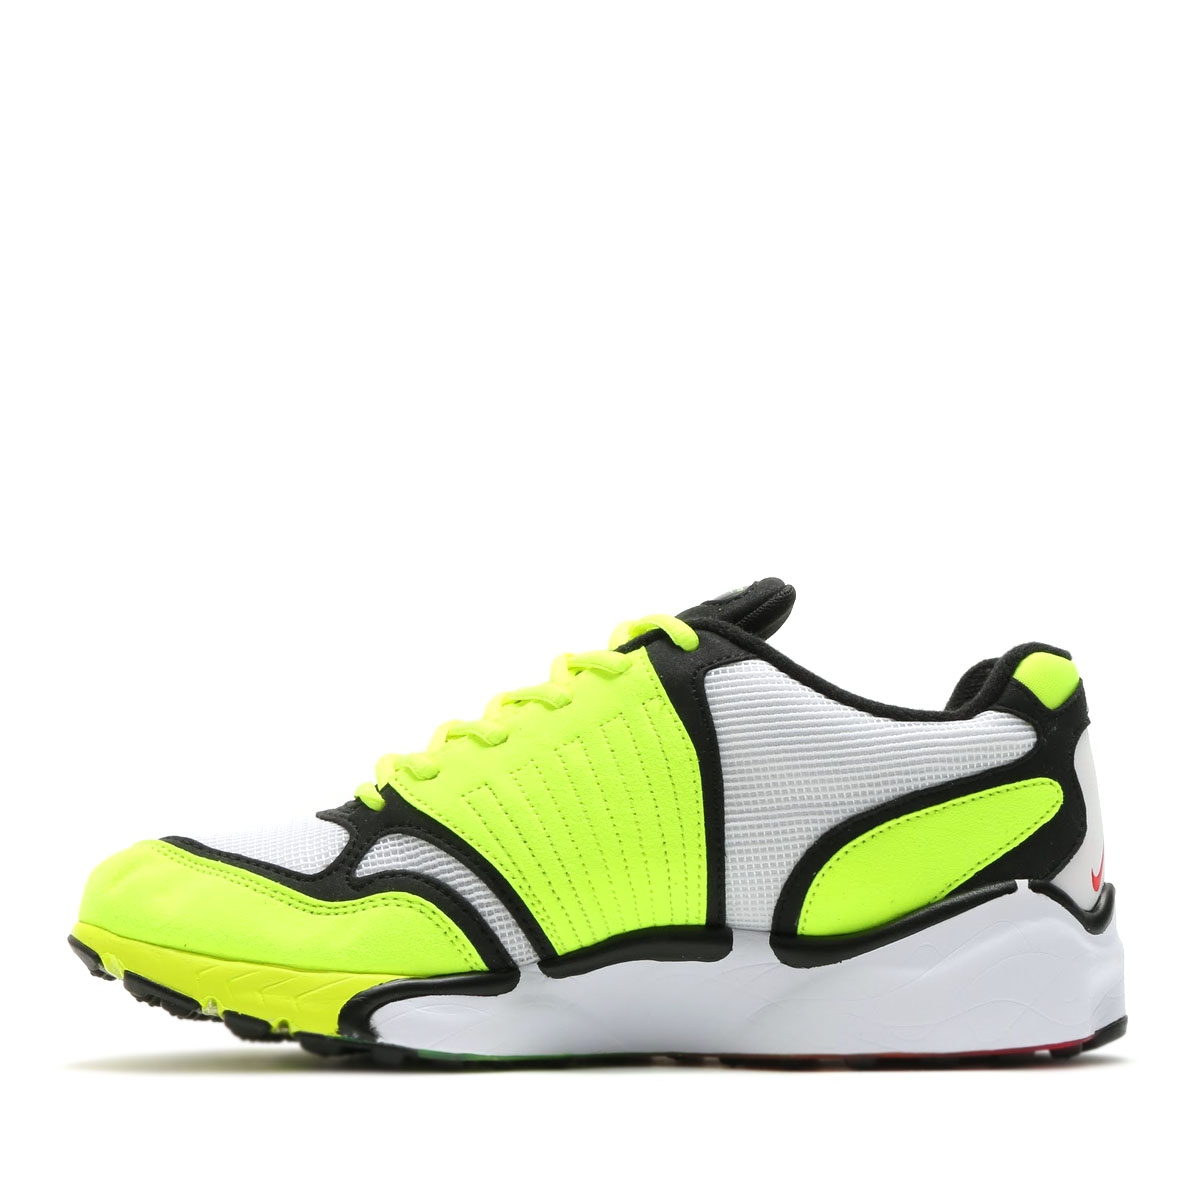 19e7fb7292f70 NIKE AIR ZOOM TALARIA  16 (Nike air zoom talaria 16) (WHITE BLACK-VOLT-WHITE-CHILE  RED) 17SP-I